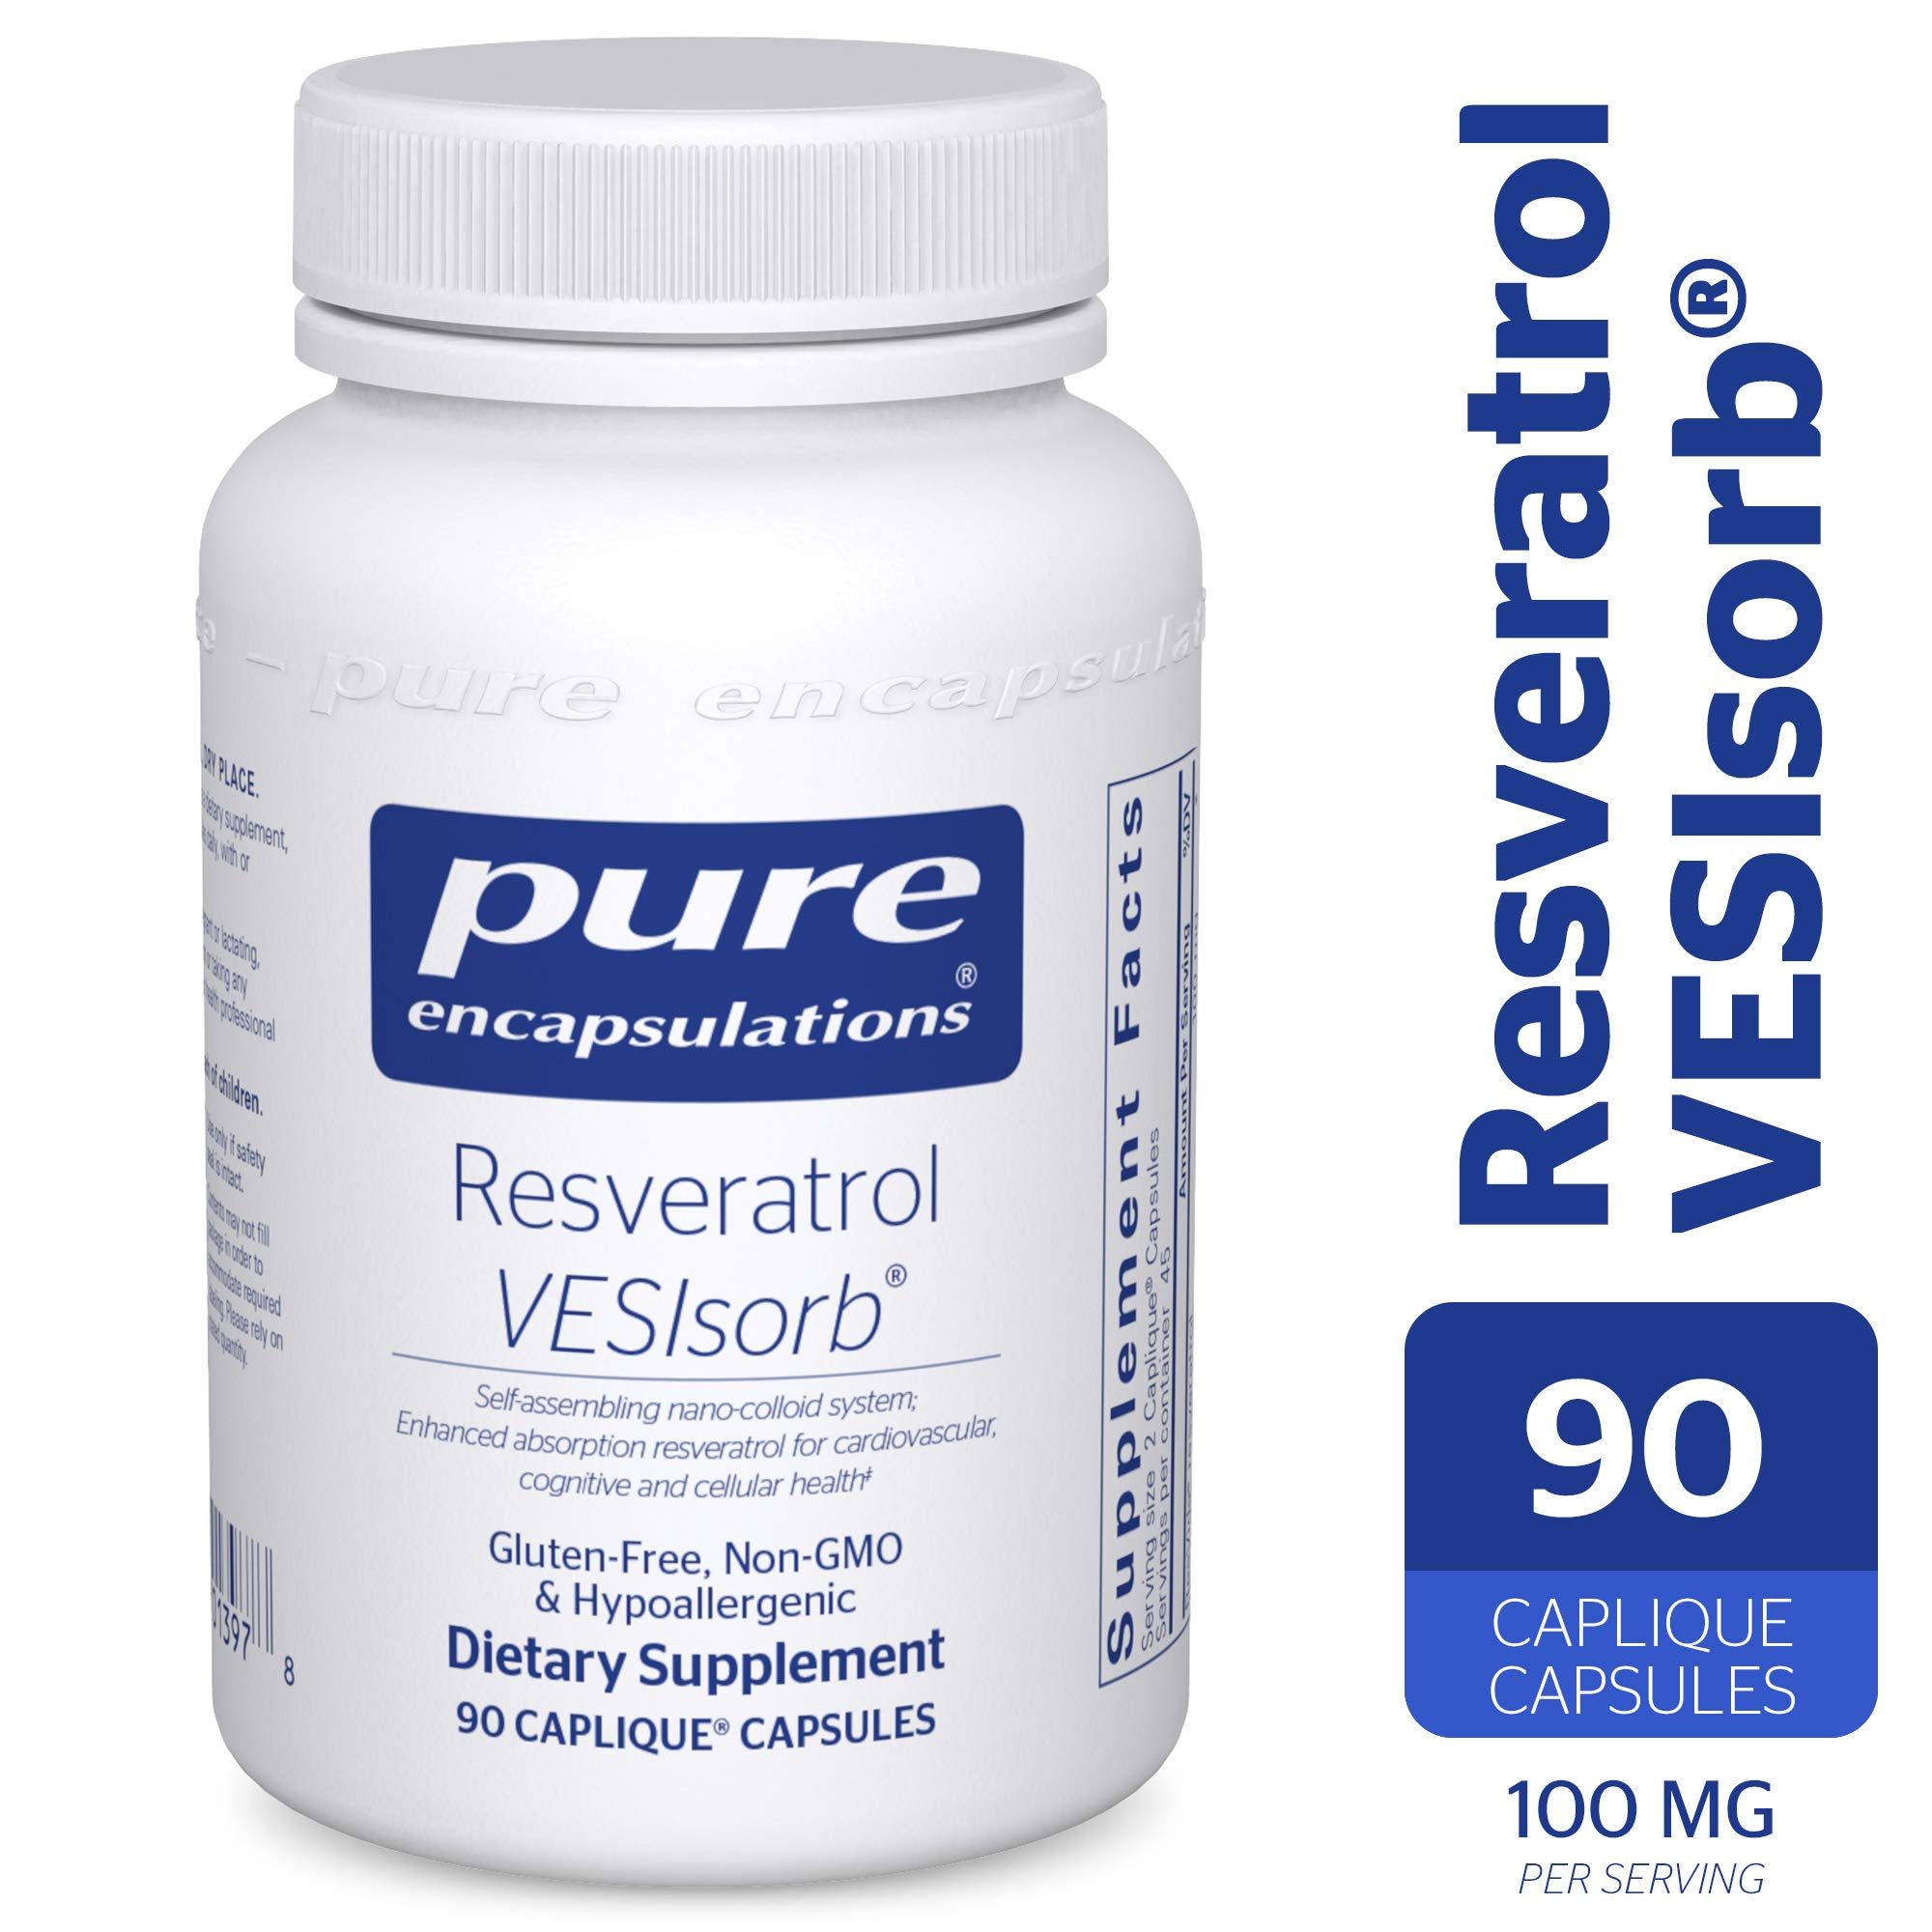 Pure Encapsulations - Resveratrol VESIsorb - Hypoallergenic Support for Cellular, Cardiovascular, and Neurocognitive Health* - 90 Caplique Capsules by Pure Encapsulations